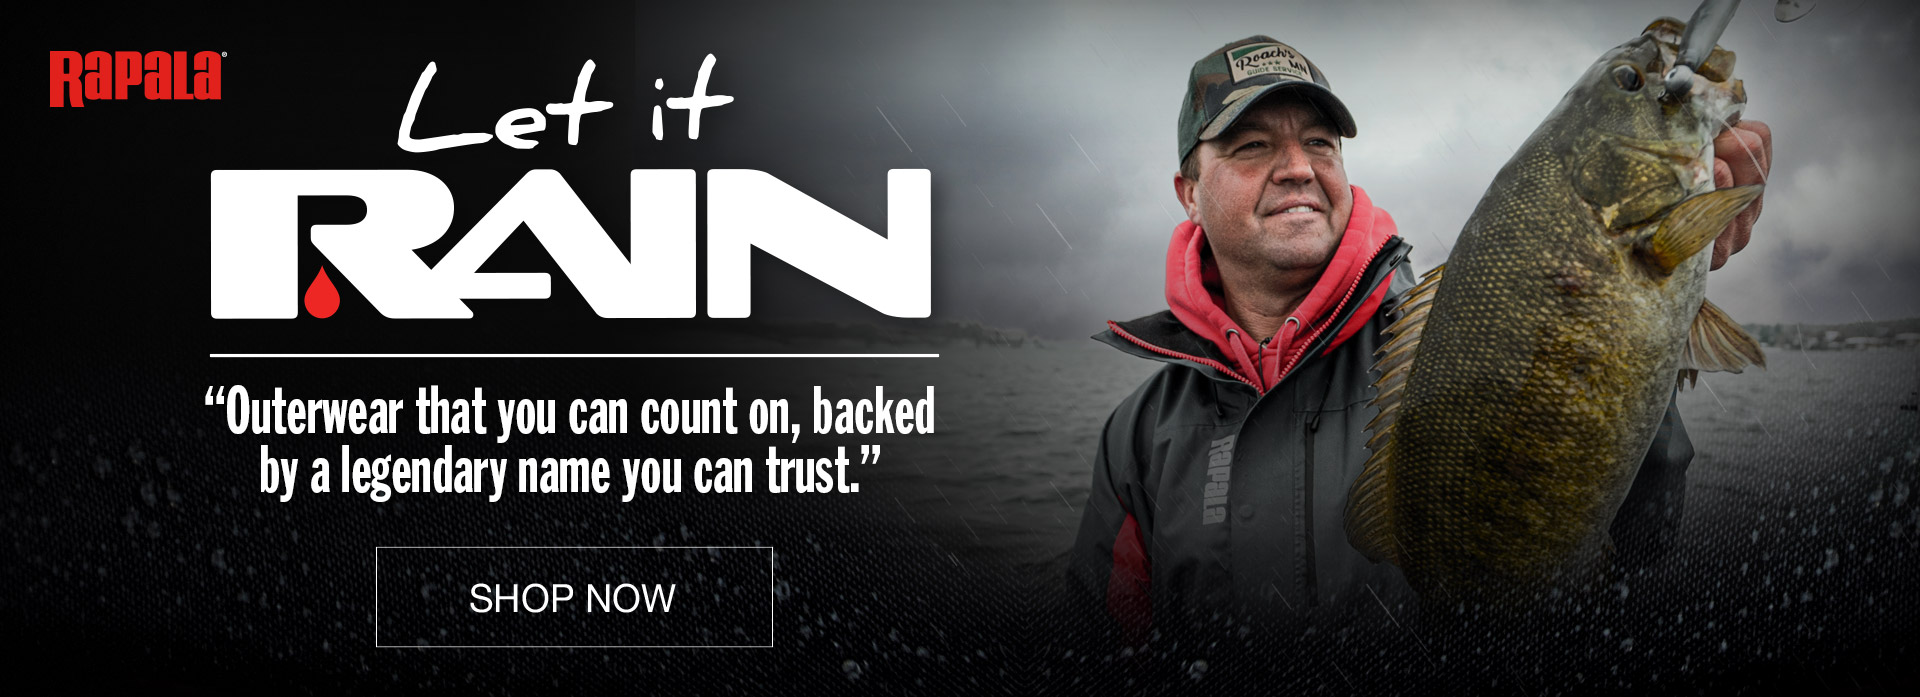 Let it Rain - New Rapala Outerwear